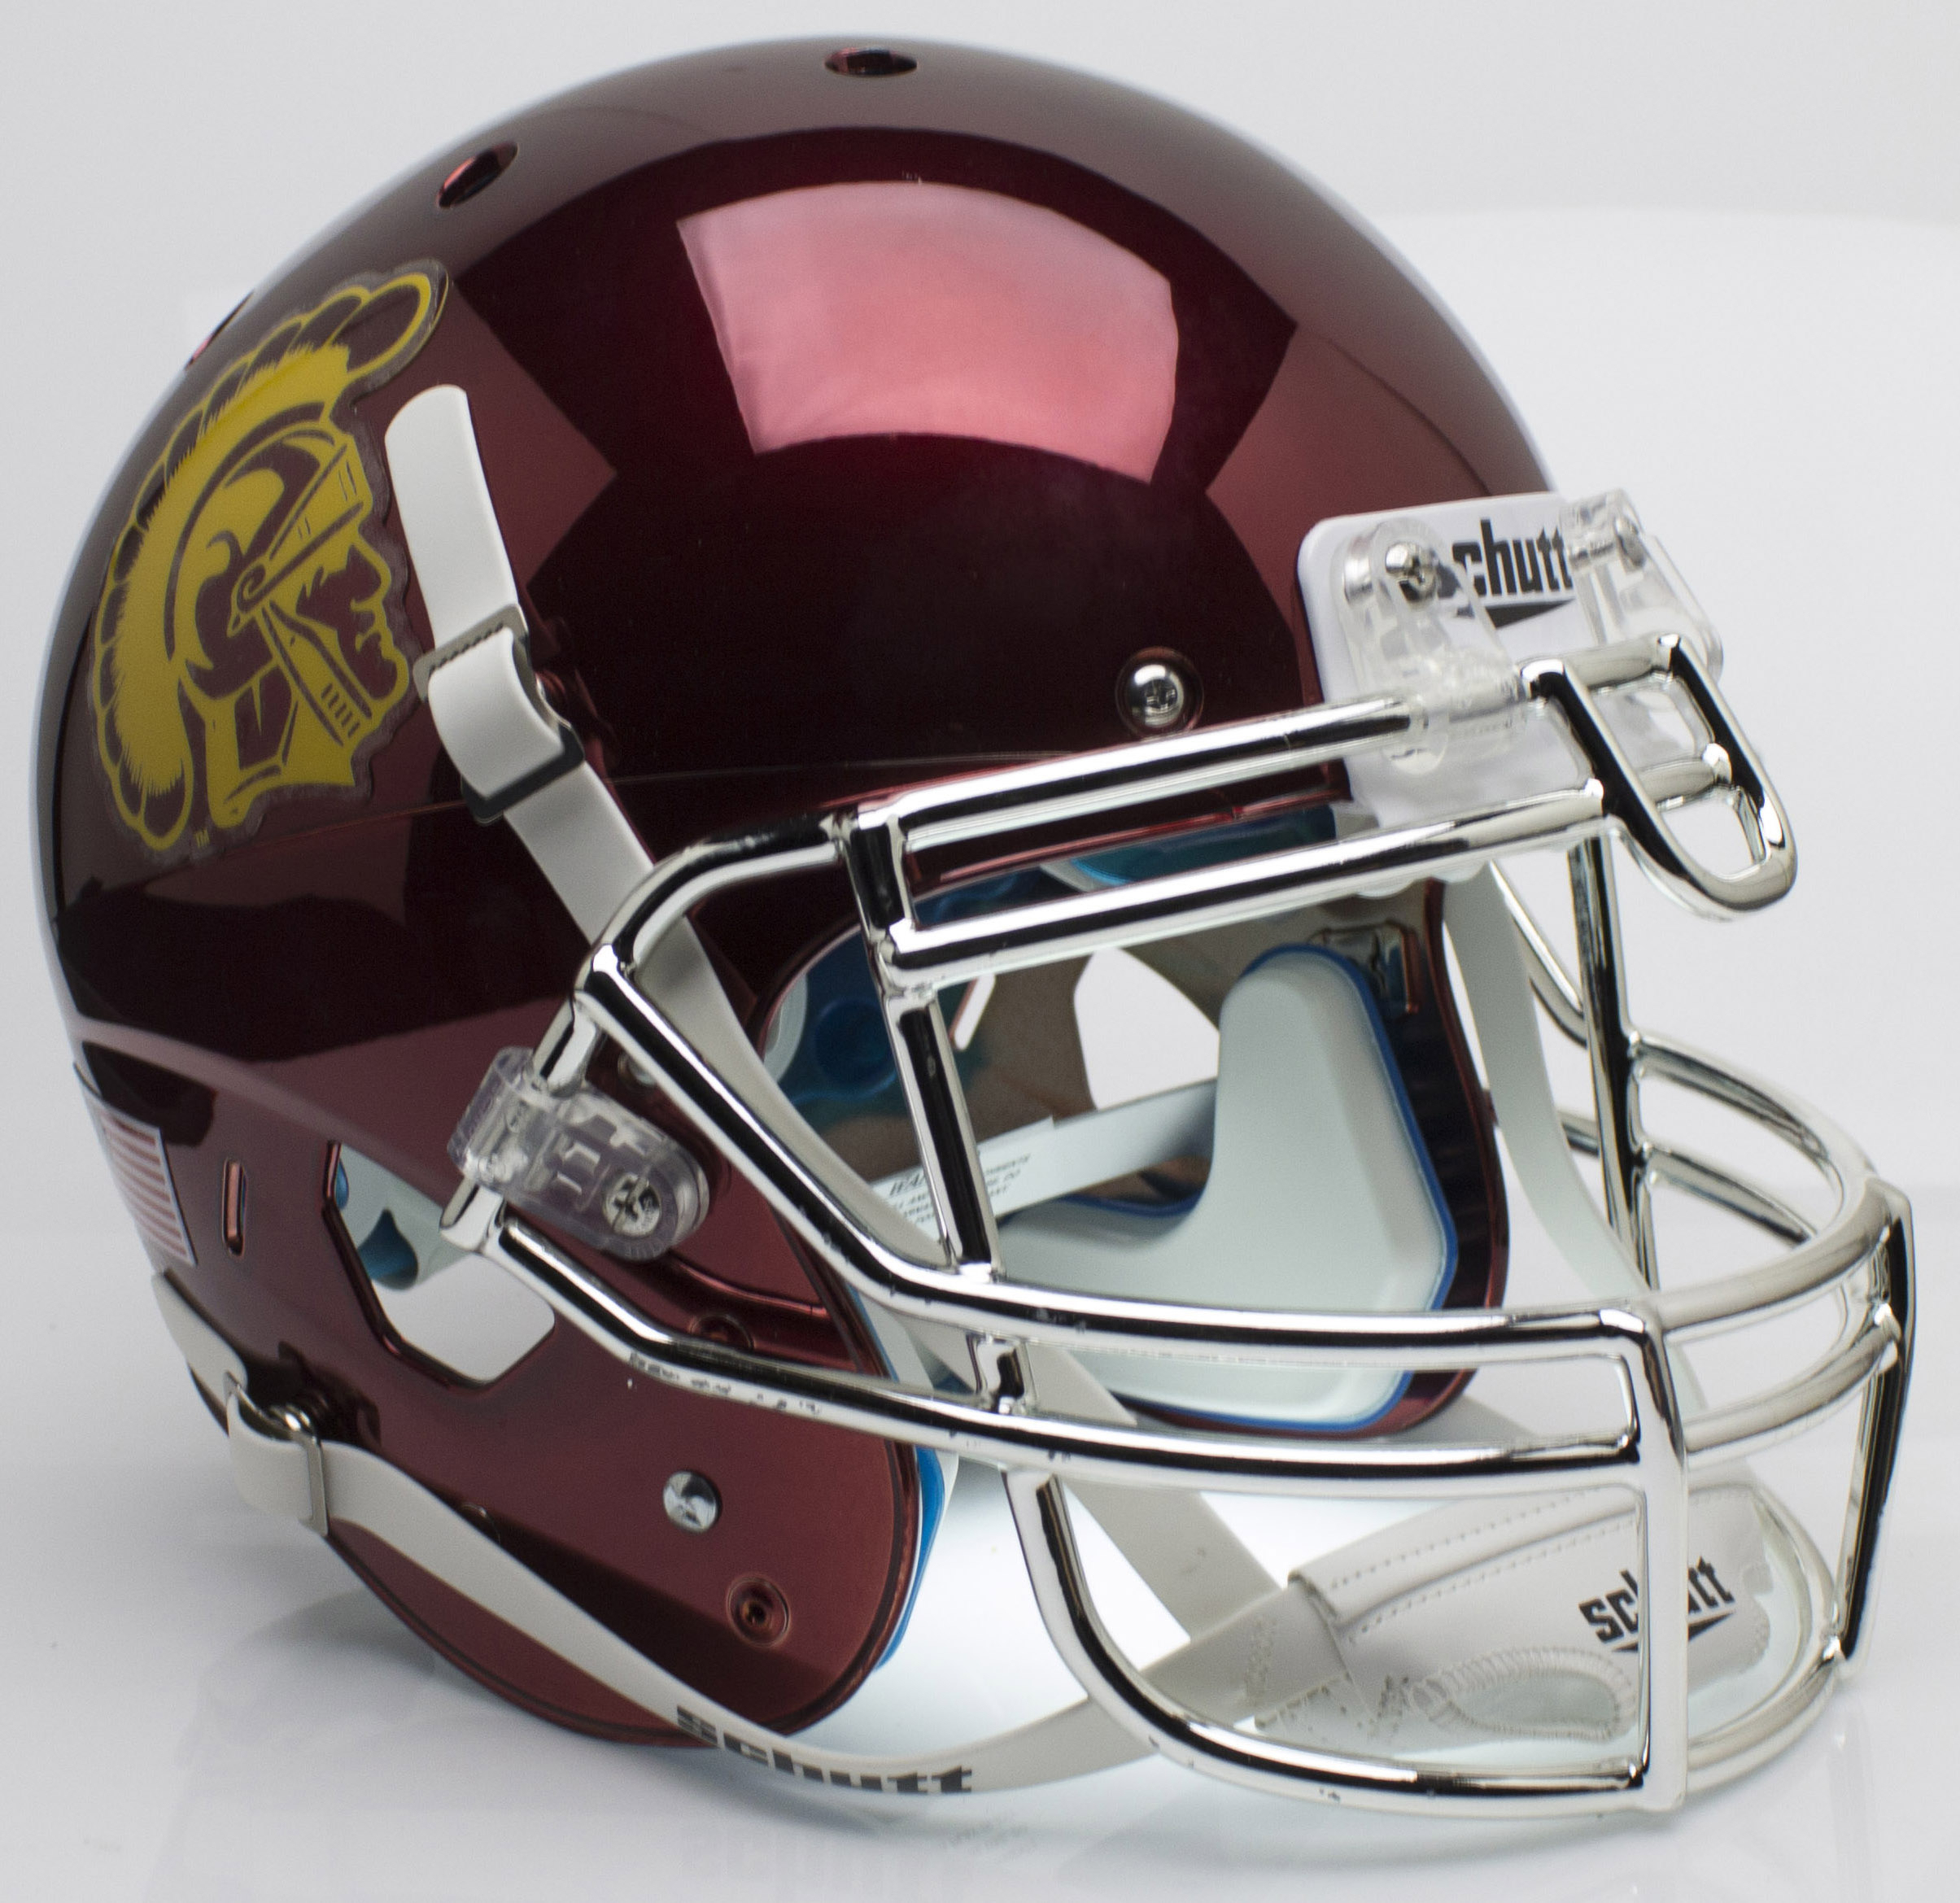 USC Trojans Authentic College XP Football Helmet Schutt <B>Chrome</B>